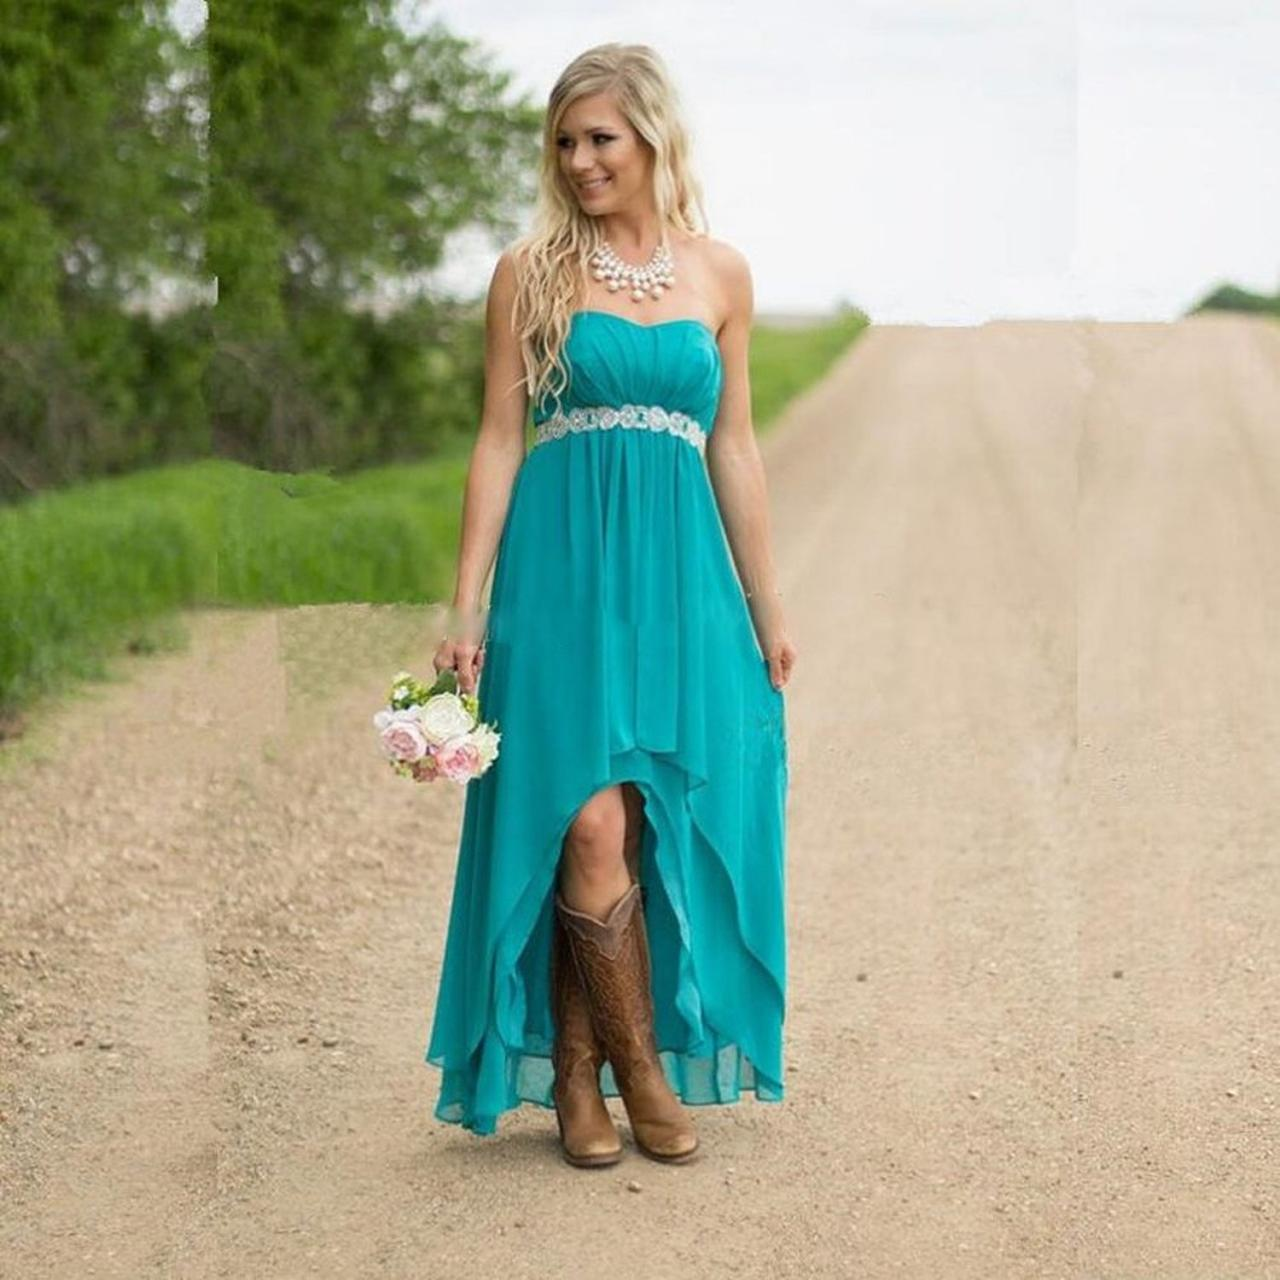 Turquoise Bridesmaid Dress,High Low Bridesmaid Dresses, Bridesmaid ...